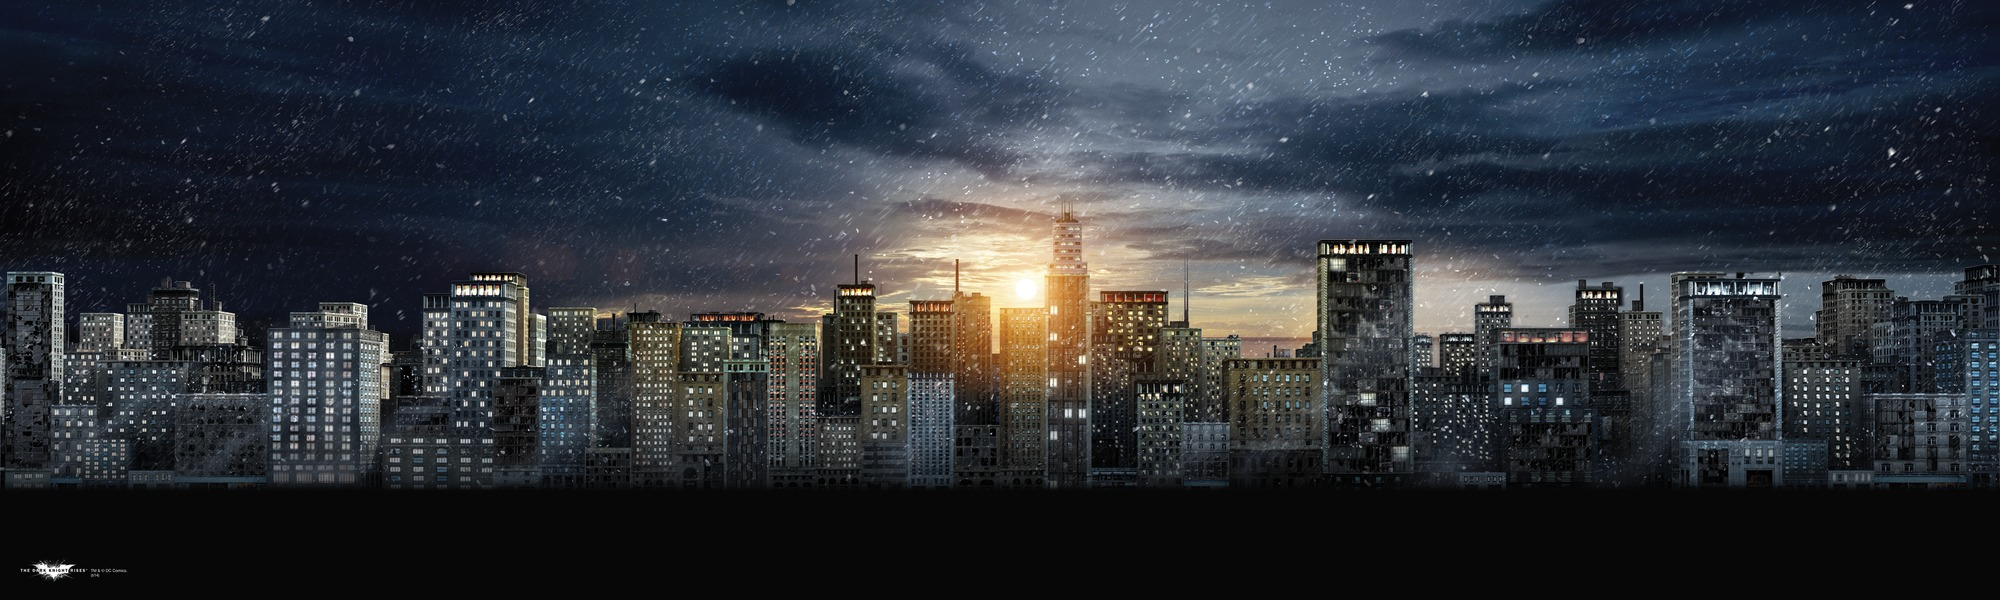 Gotham City Wall Mural Wallpaper Mural 2000x600